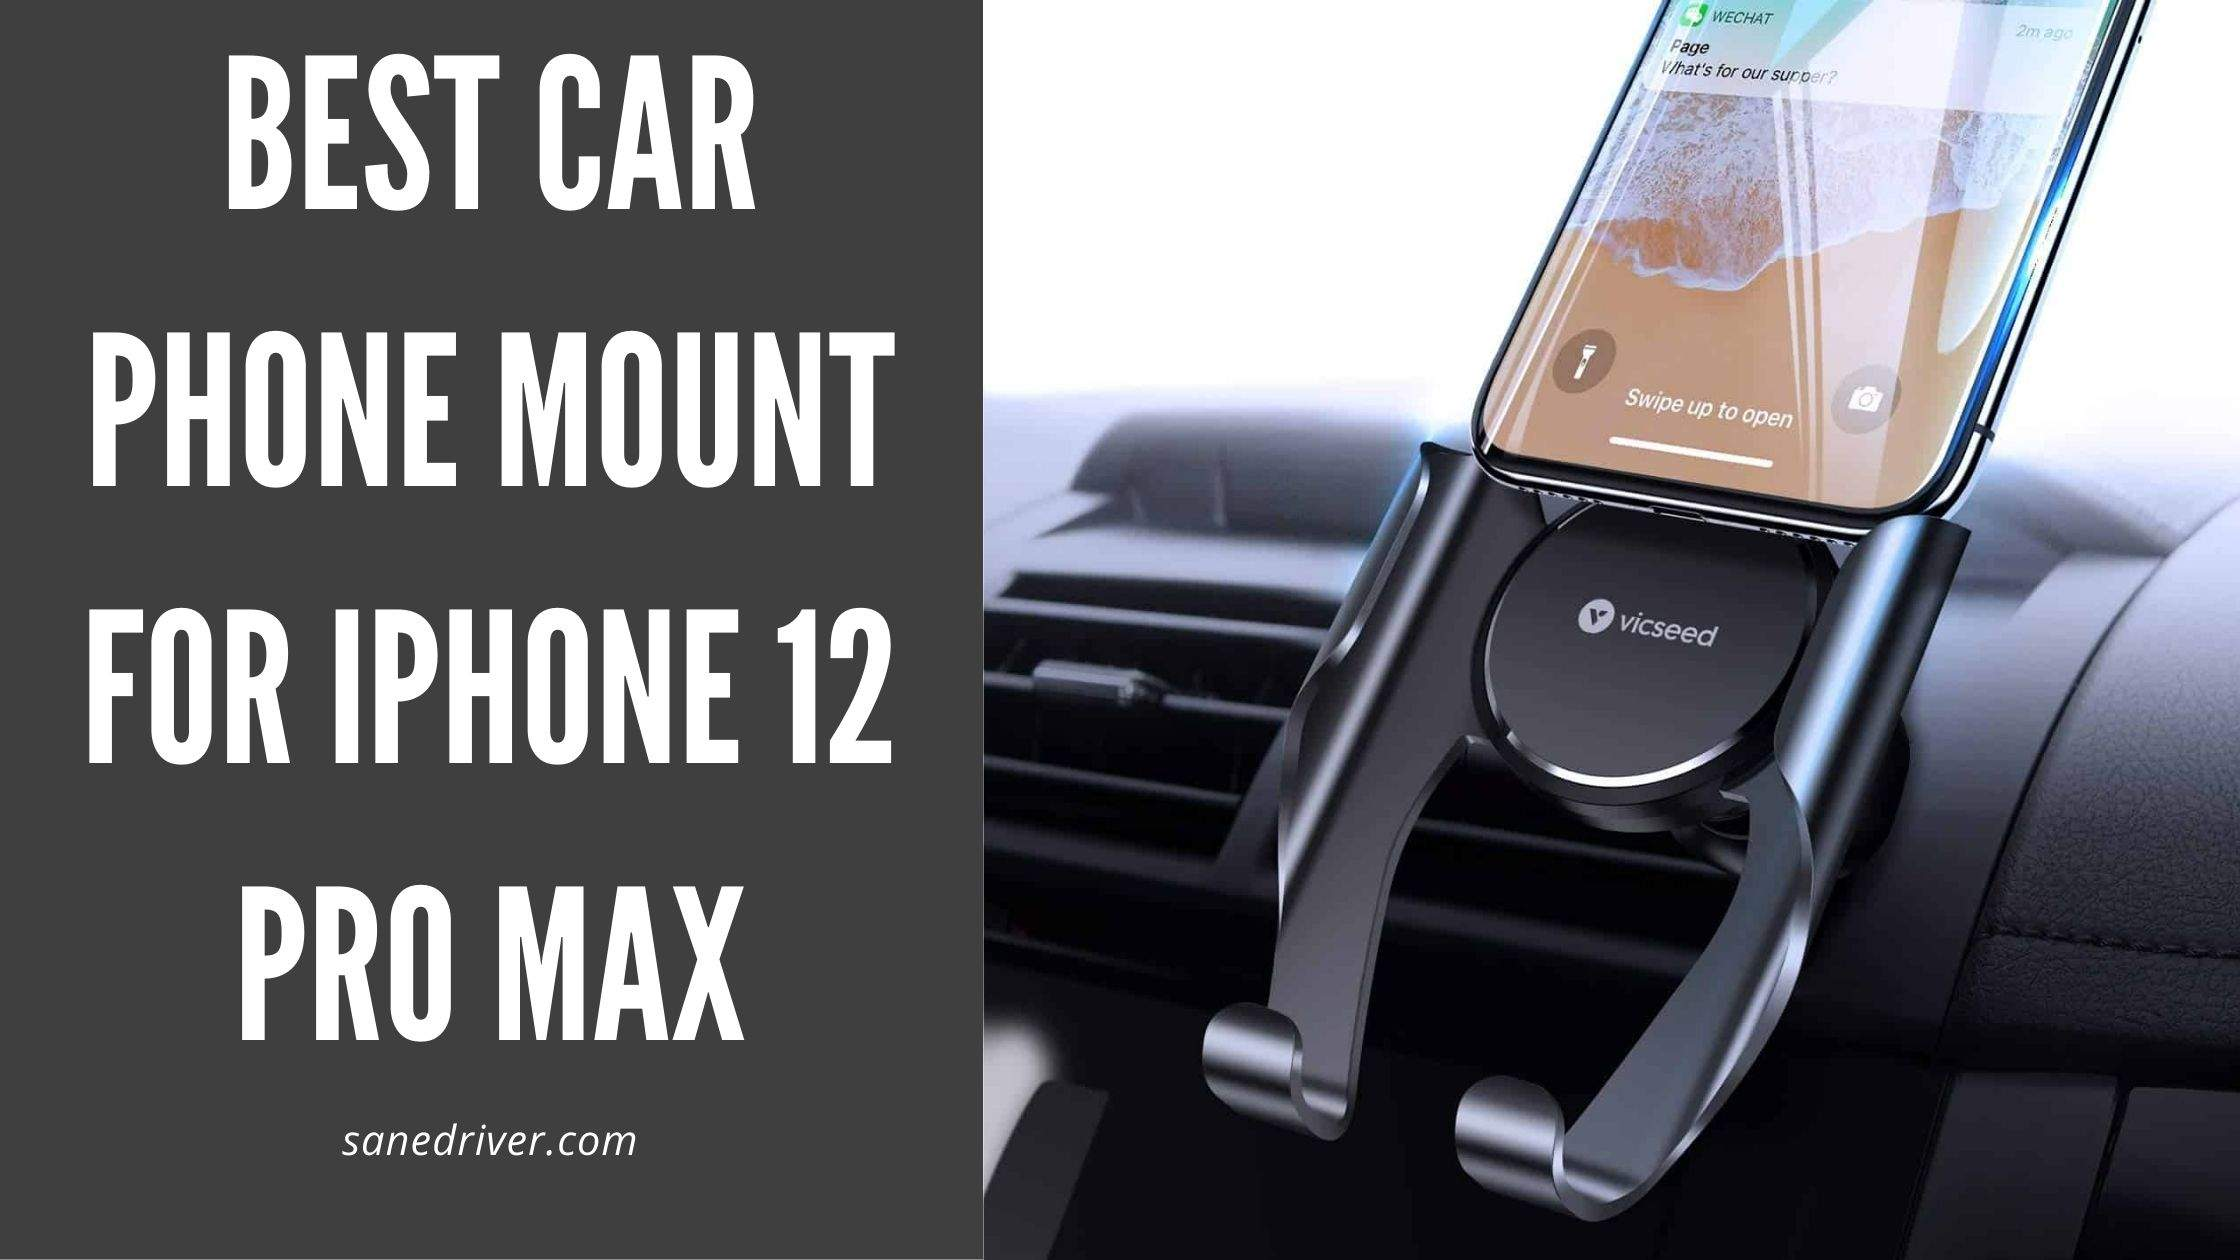 Best Car Phone Mount for iPhone 12 Pro Max